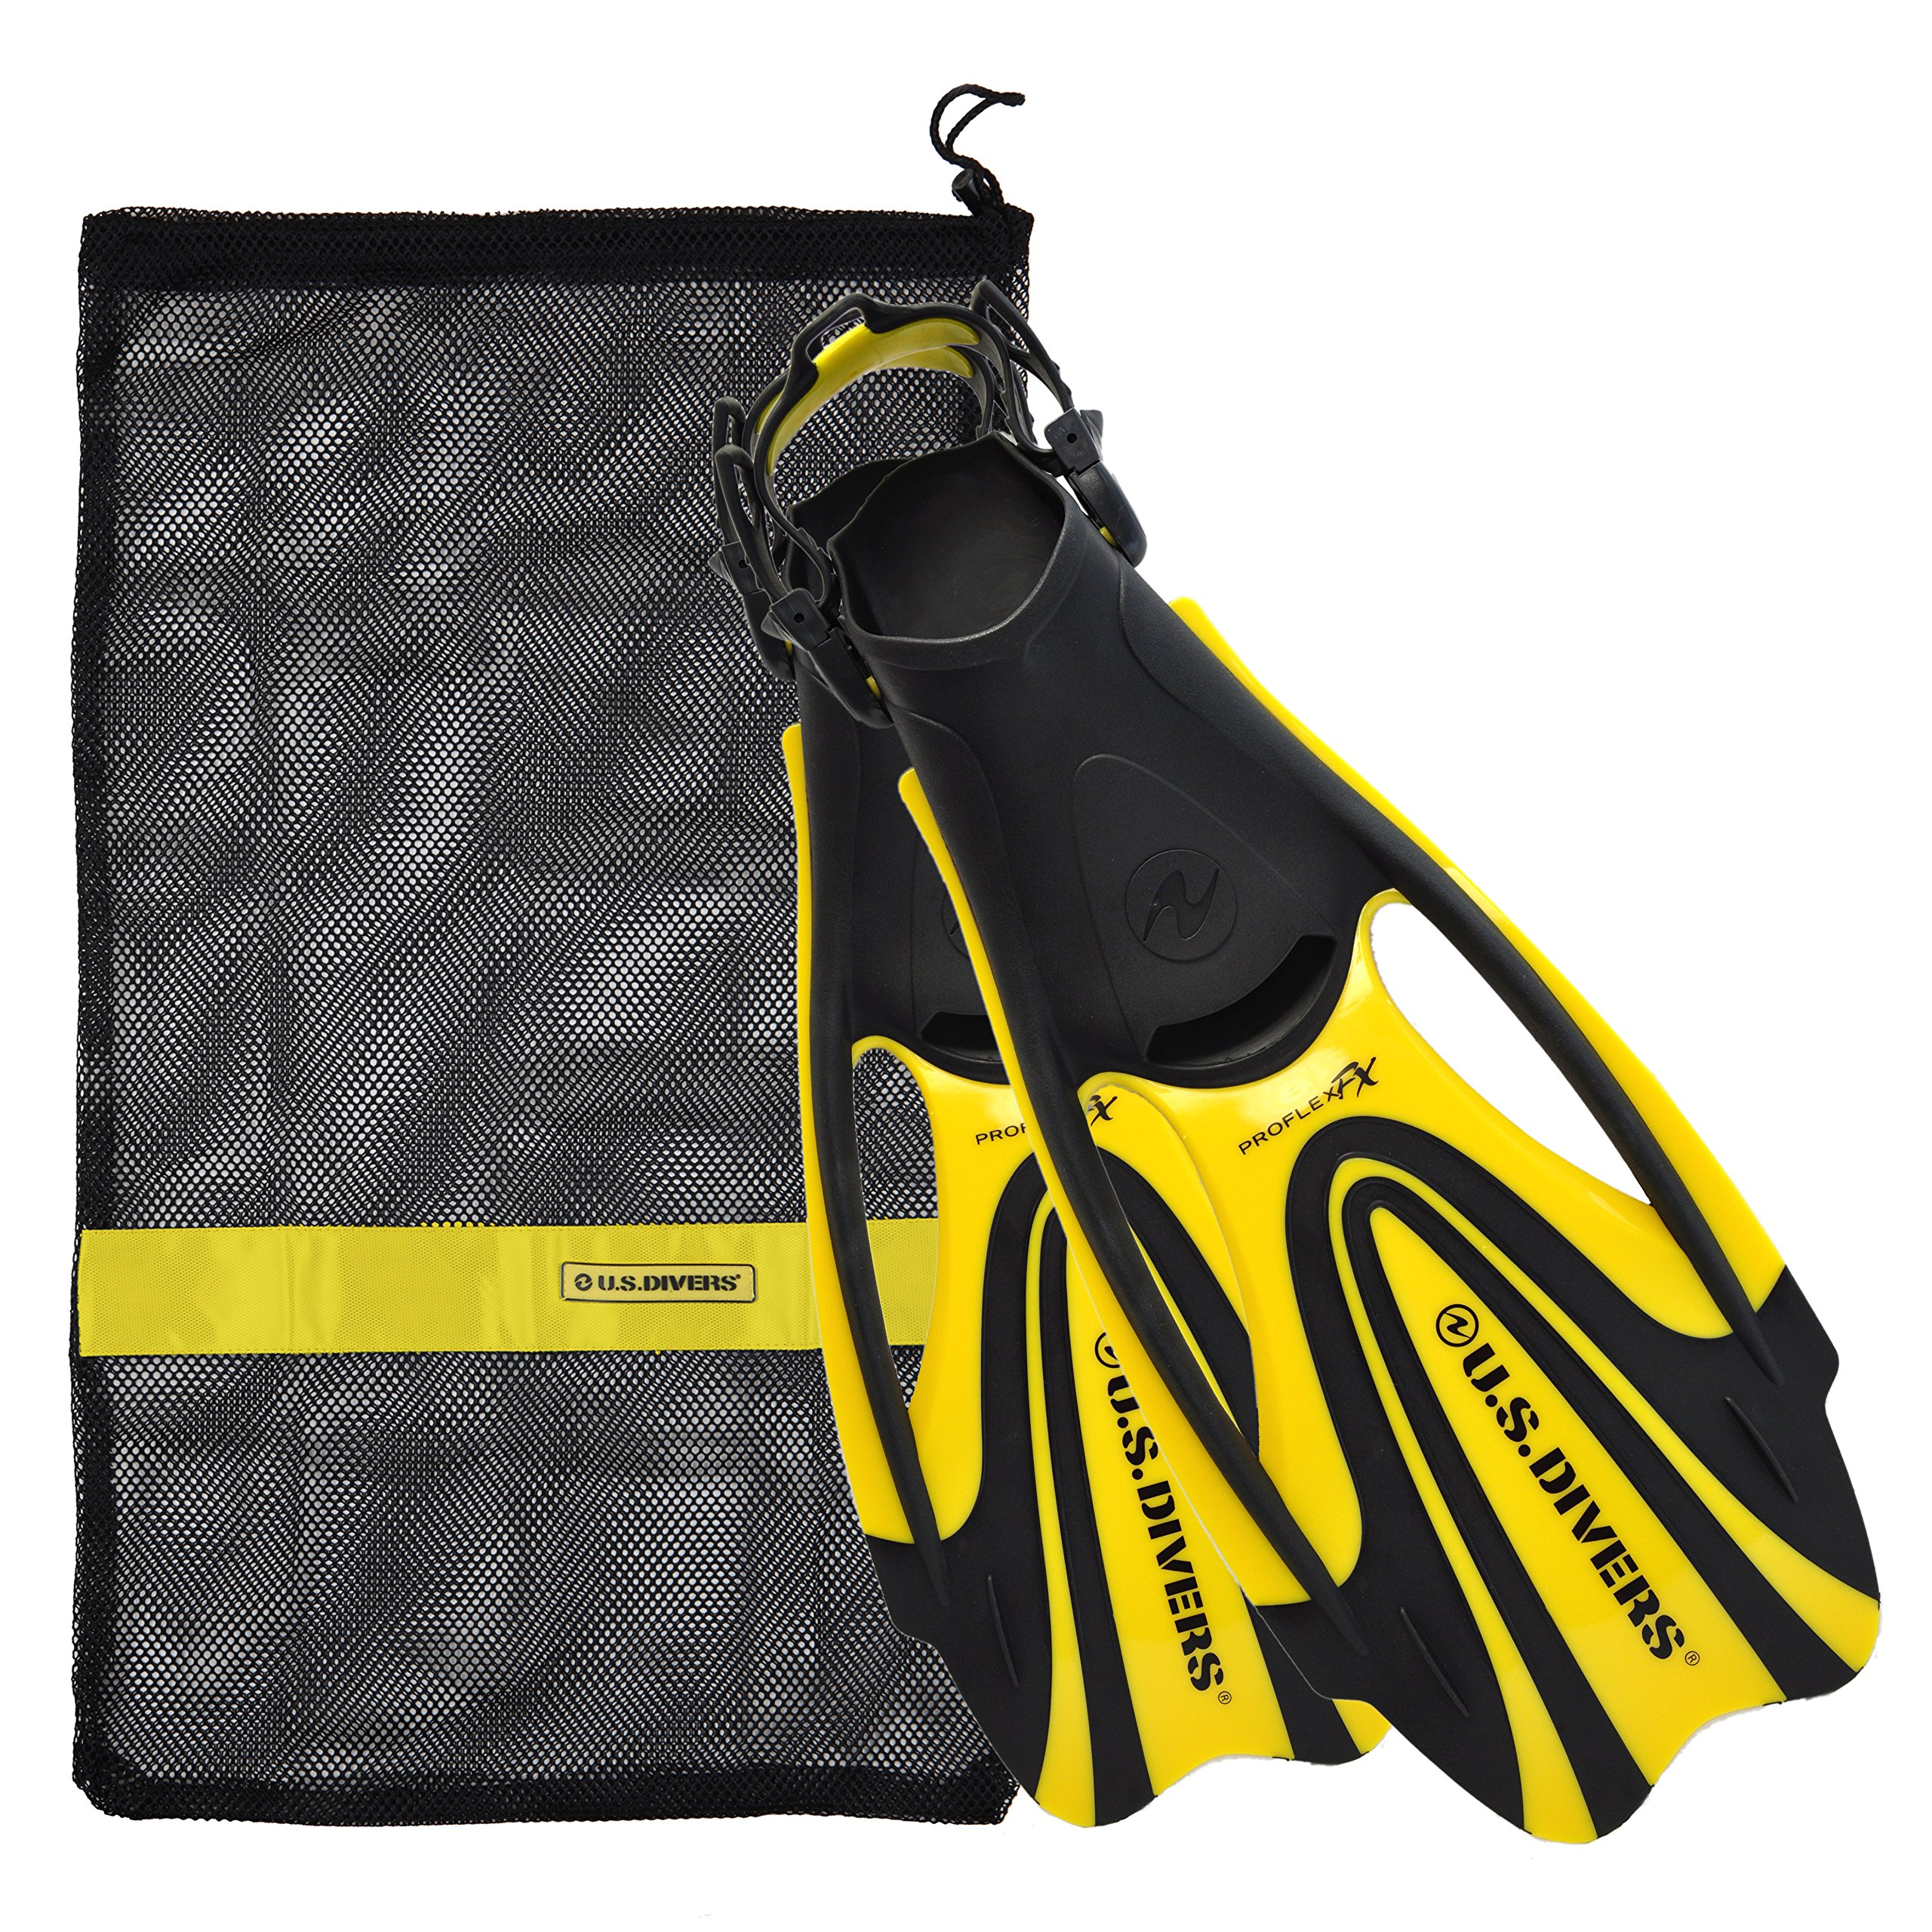 U.S. Divers Proflex FX Fin with Mesh Carrying Bag, Yellow, Medium by U.S. Divers